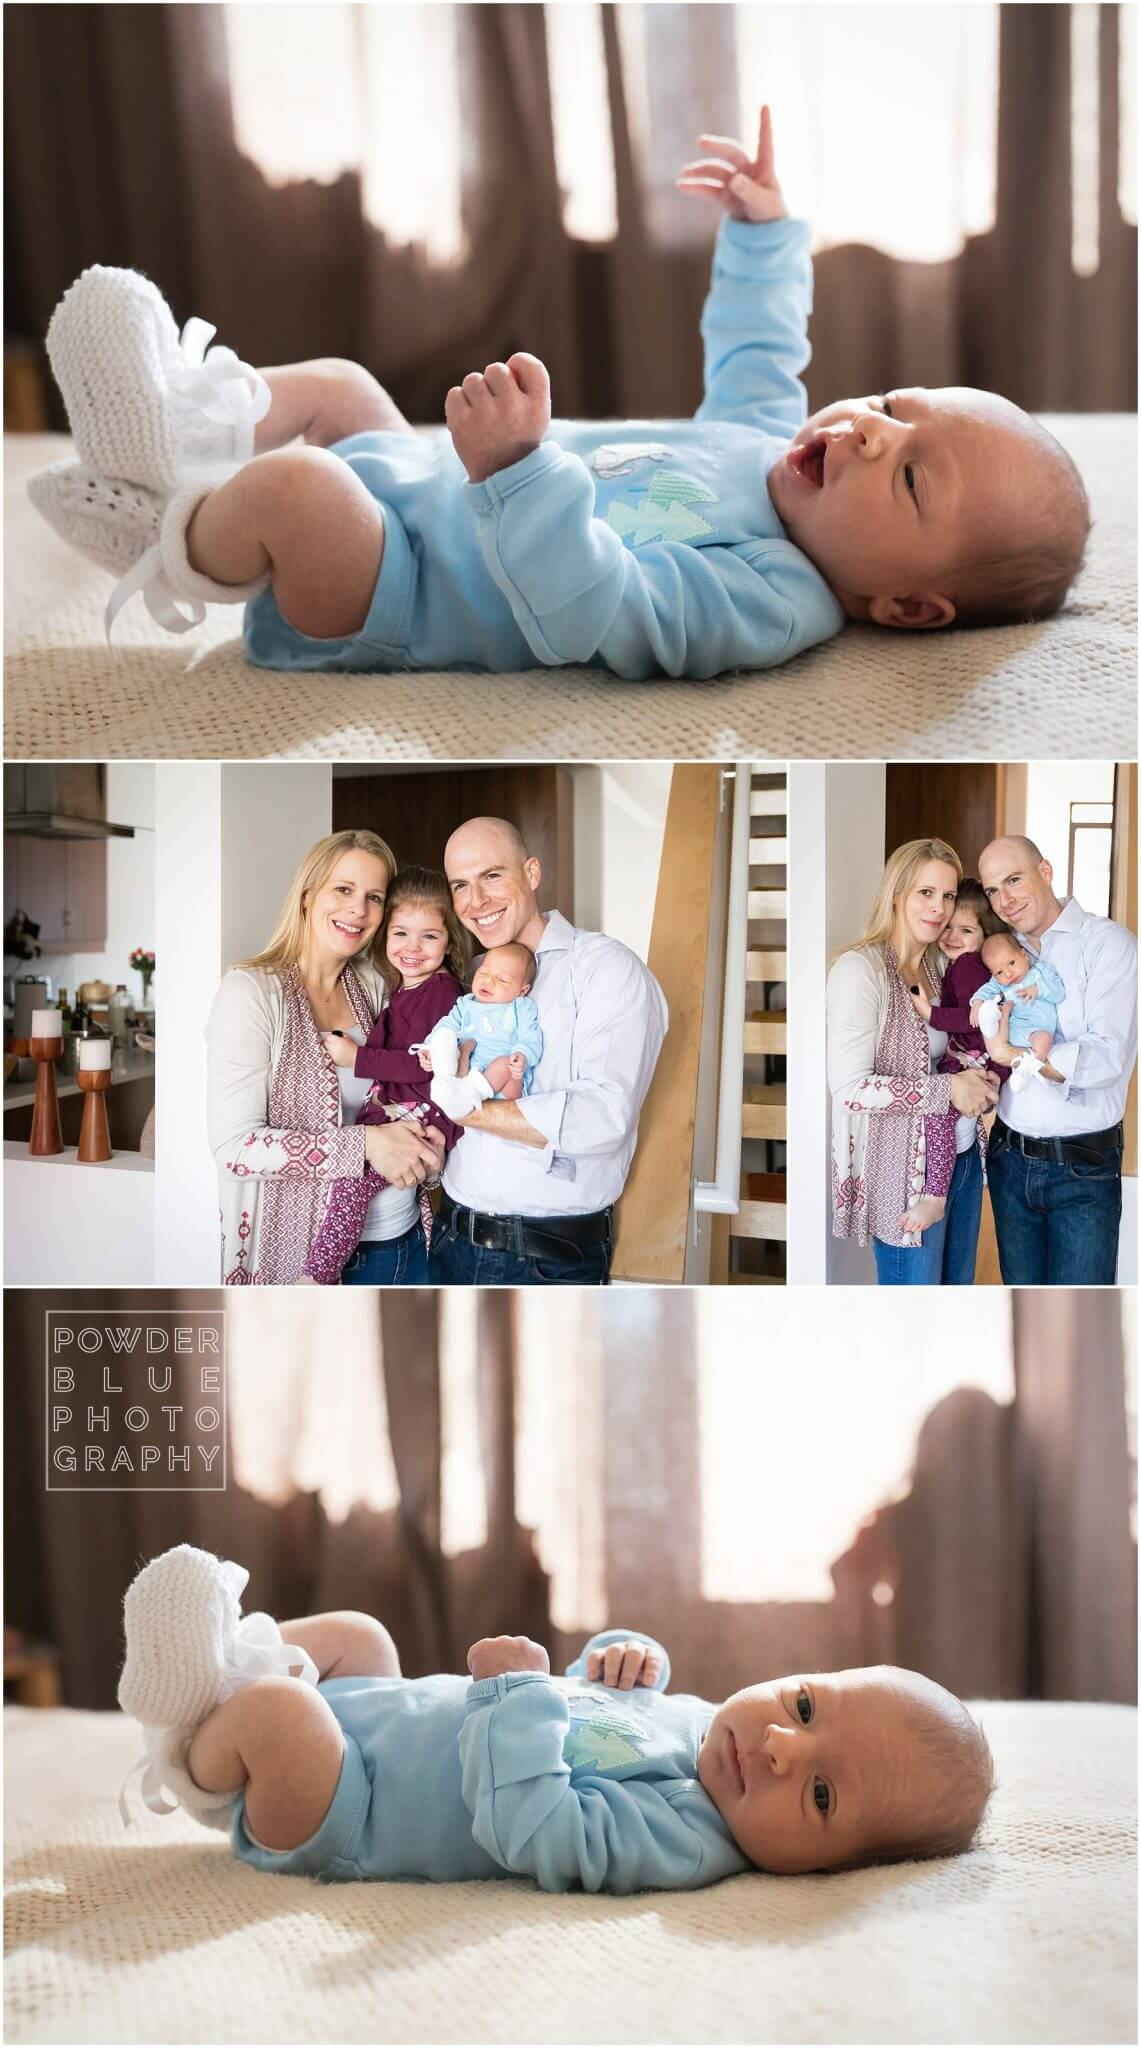 newborn lifestyle photography pittsburgh. baby in blue onesie on a bed.